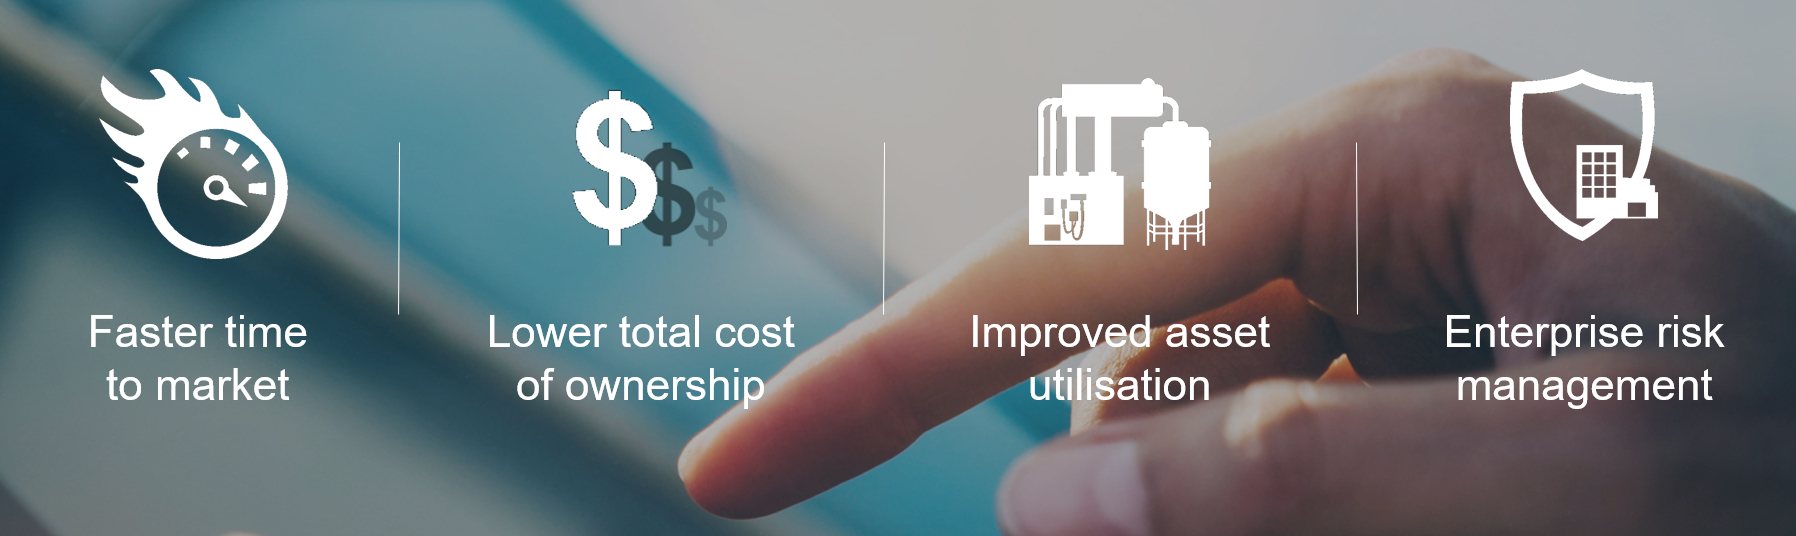 The Connected Enterprise - Rockwell Automation - Manufacturing Innovation Summit